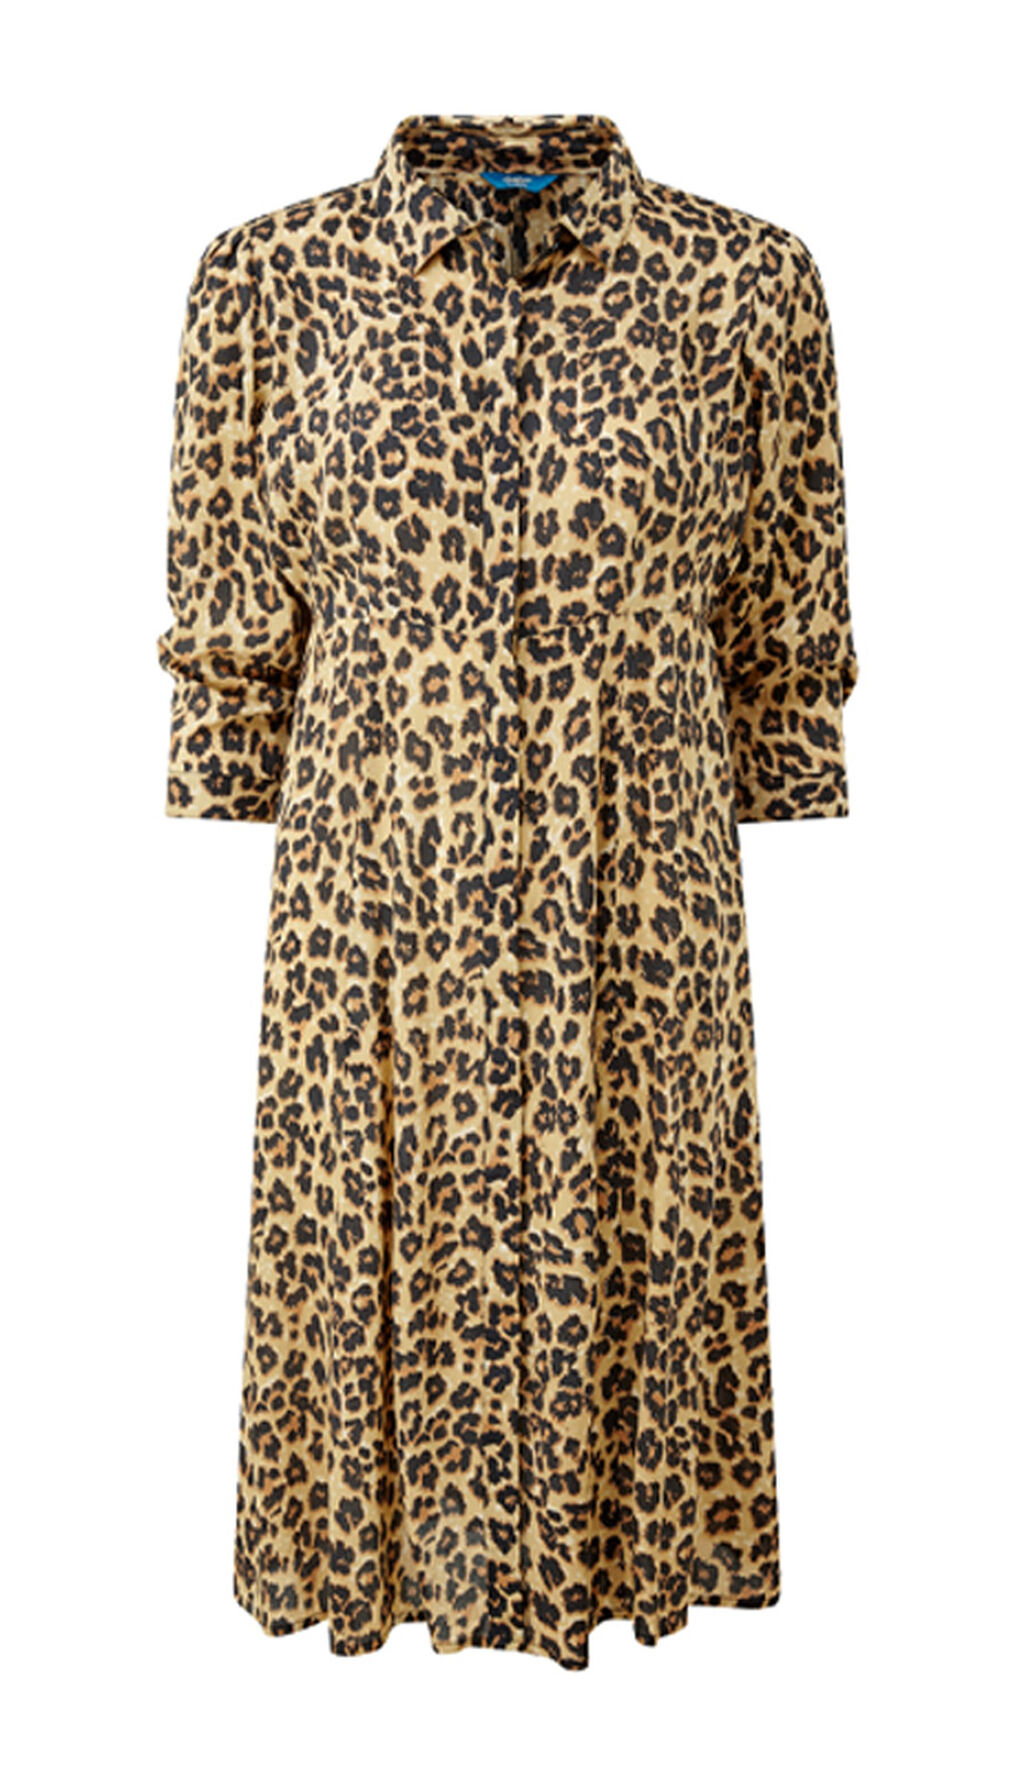 The Feelgood Coat   Frockstar Button-through Dress   By Cotton Traders